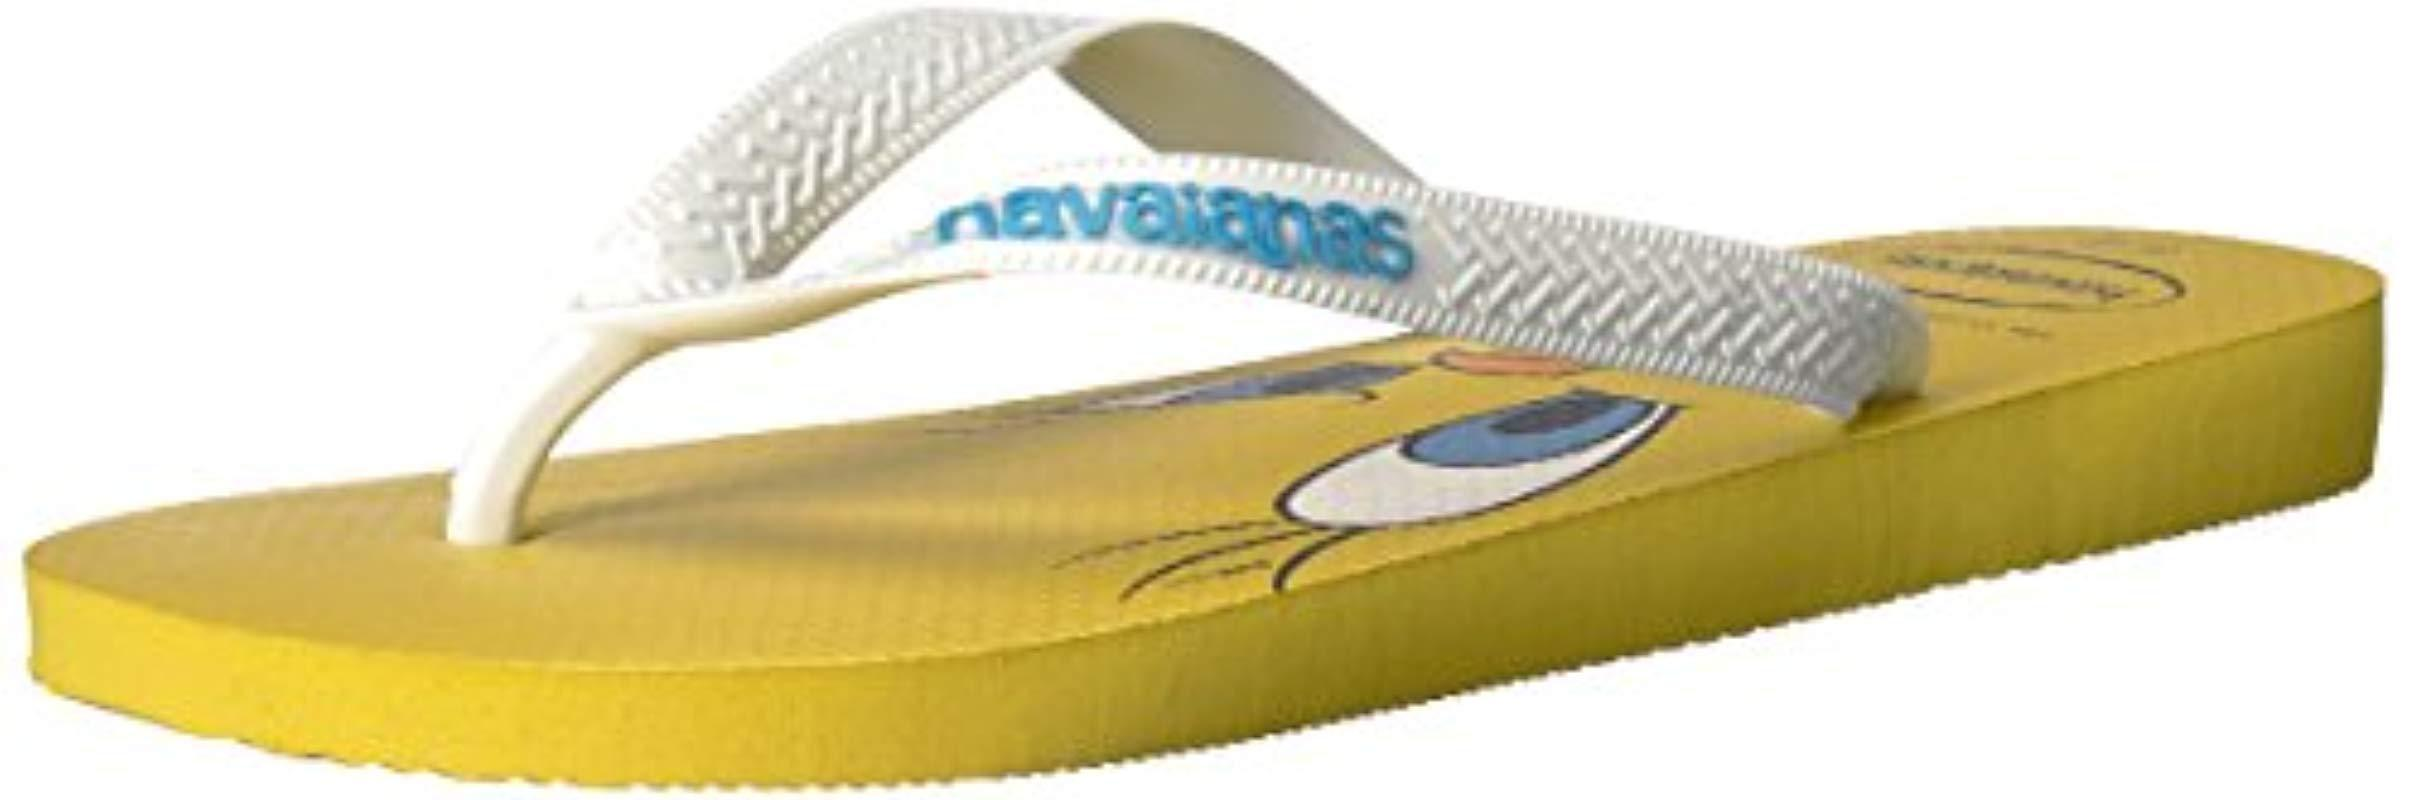 ef6f9ce579eba7 Lyst - Havaianas Looney Tunes Sandal Citrus Yellow in Yellow